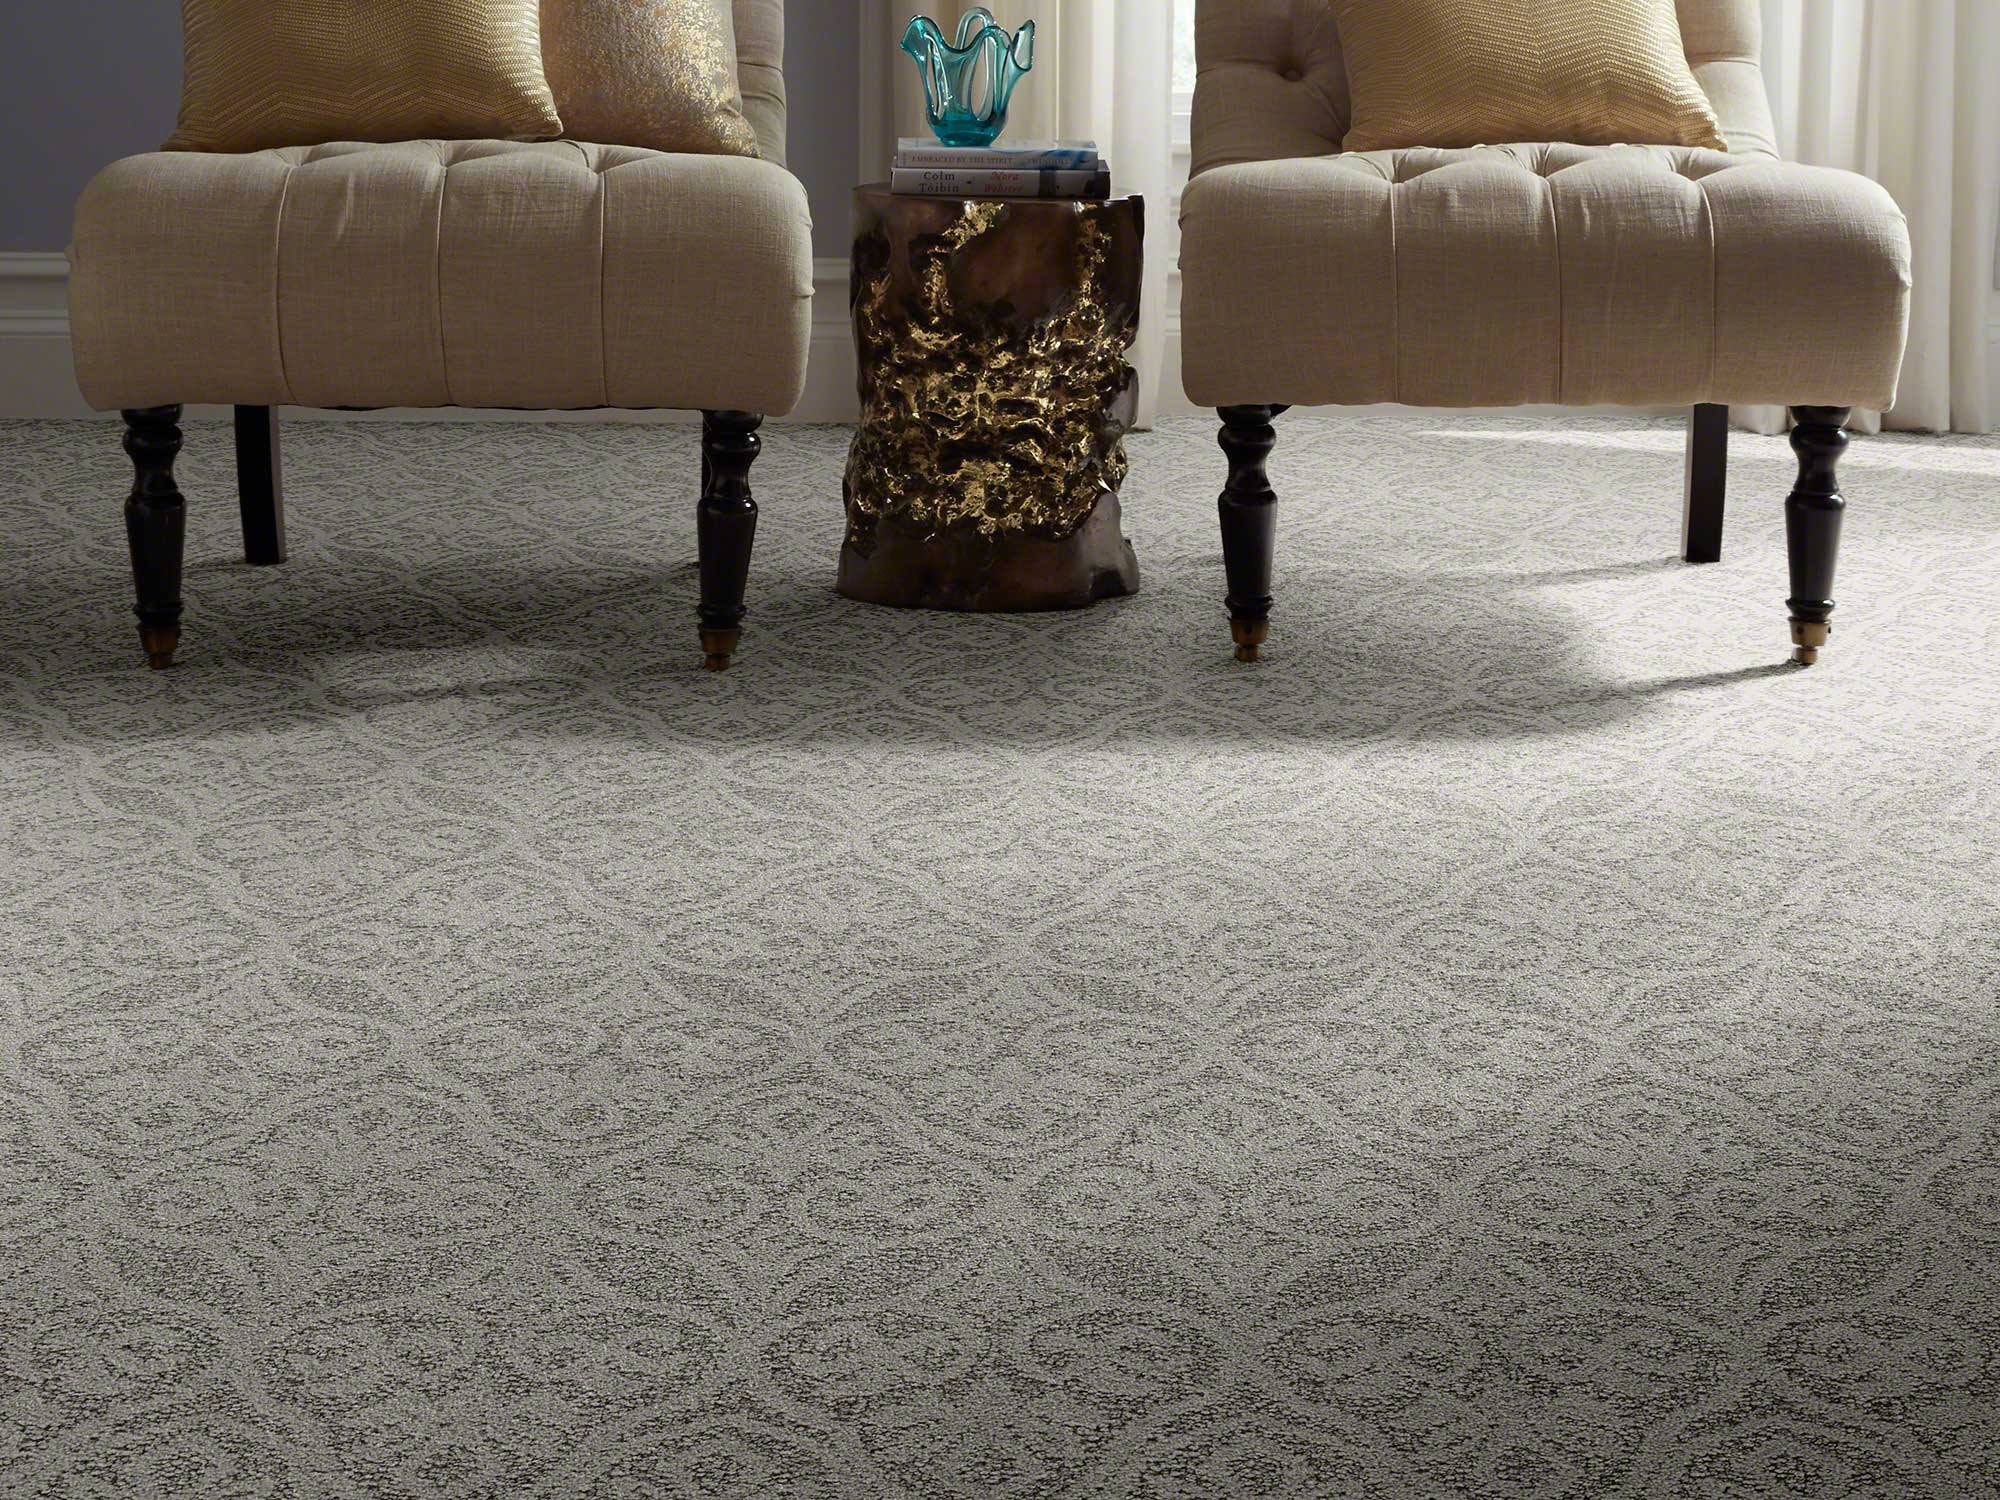 Shaw carpeting, a front runner in the world of carpets